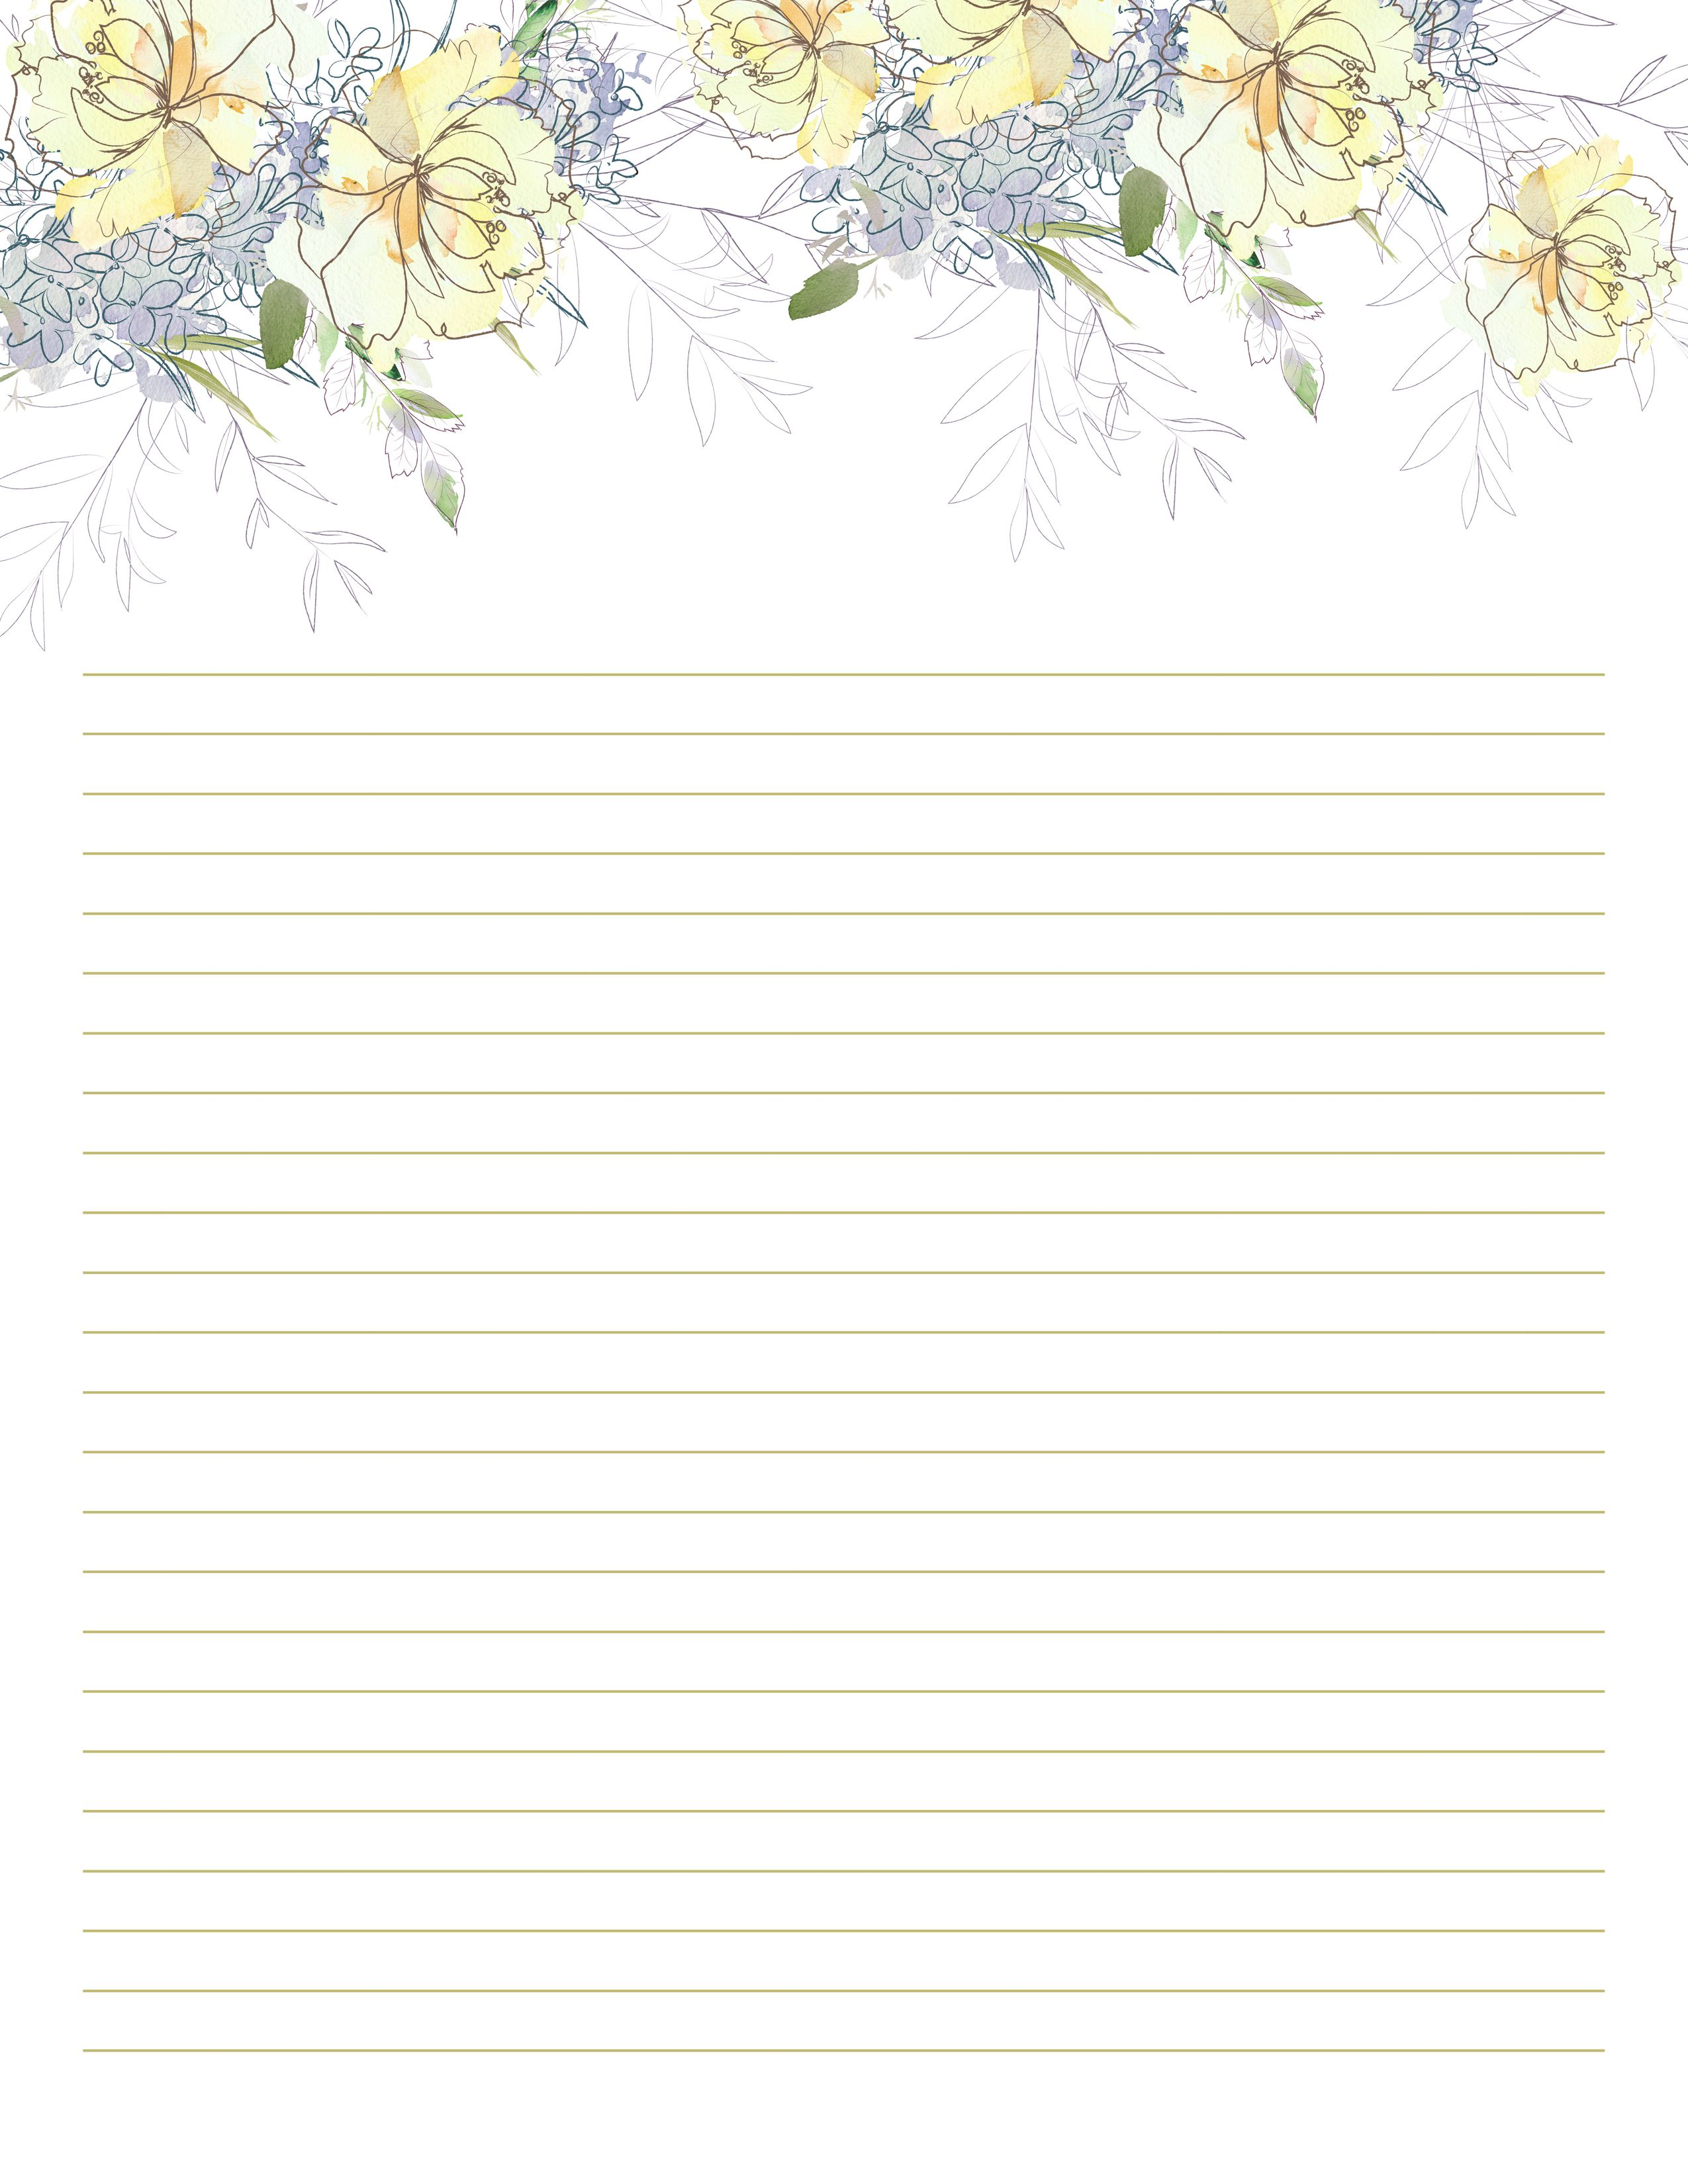 watercolor #stationery #printables #etsyprints #paper | Free ... on easter bunny head template, letter crafts template, connect the dots template, letter envelopes template, letter boxes template, letter pad format, letter labels template, letter flowers template, love letter template, letter ornaments template, letter background templates, letter stamps template, logo with letter head template, from the office of stationary template, letter powerpoint template, letter on letterhead template, cute letter template, make a paper box template, letter stationary with lines, letter tiles template,